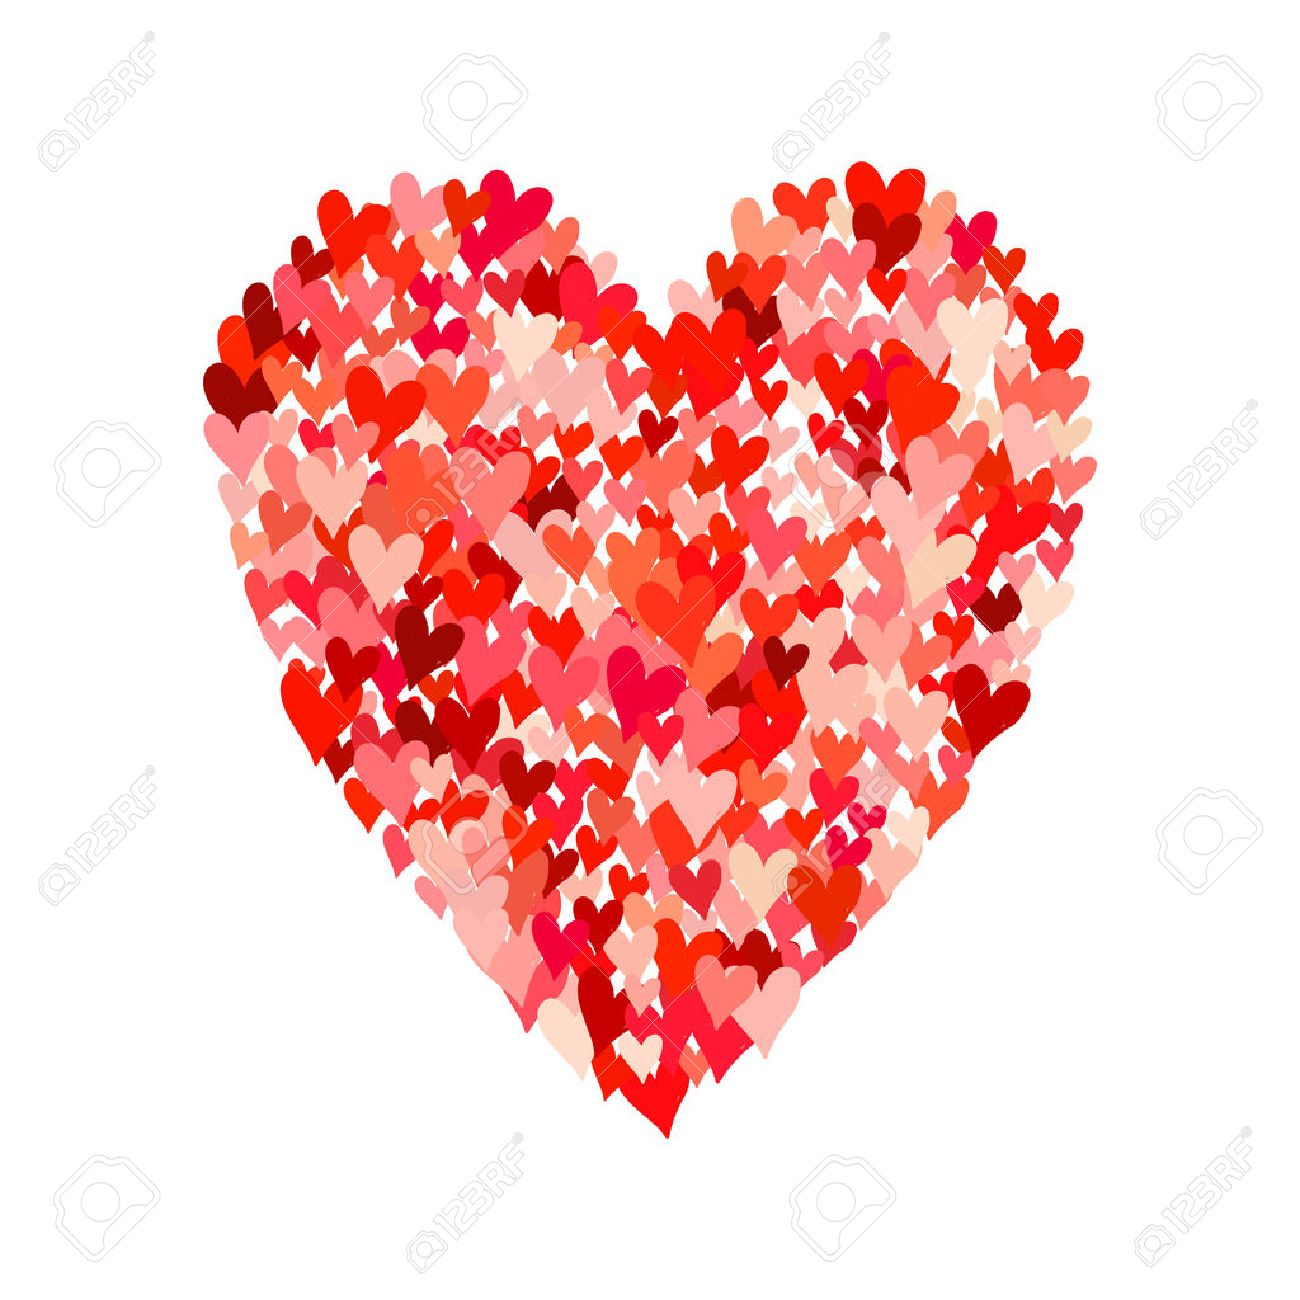 big heart images u0026 stock pictures royalty free big heart photos